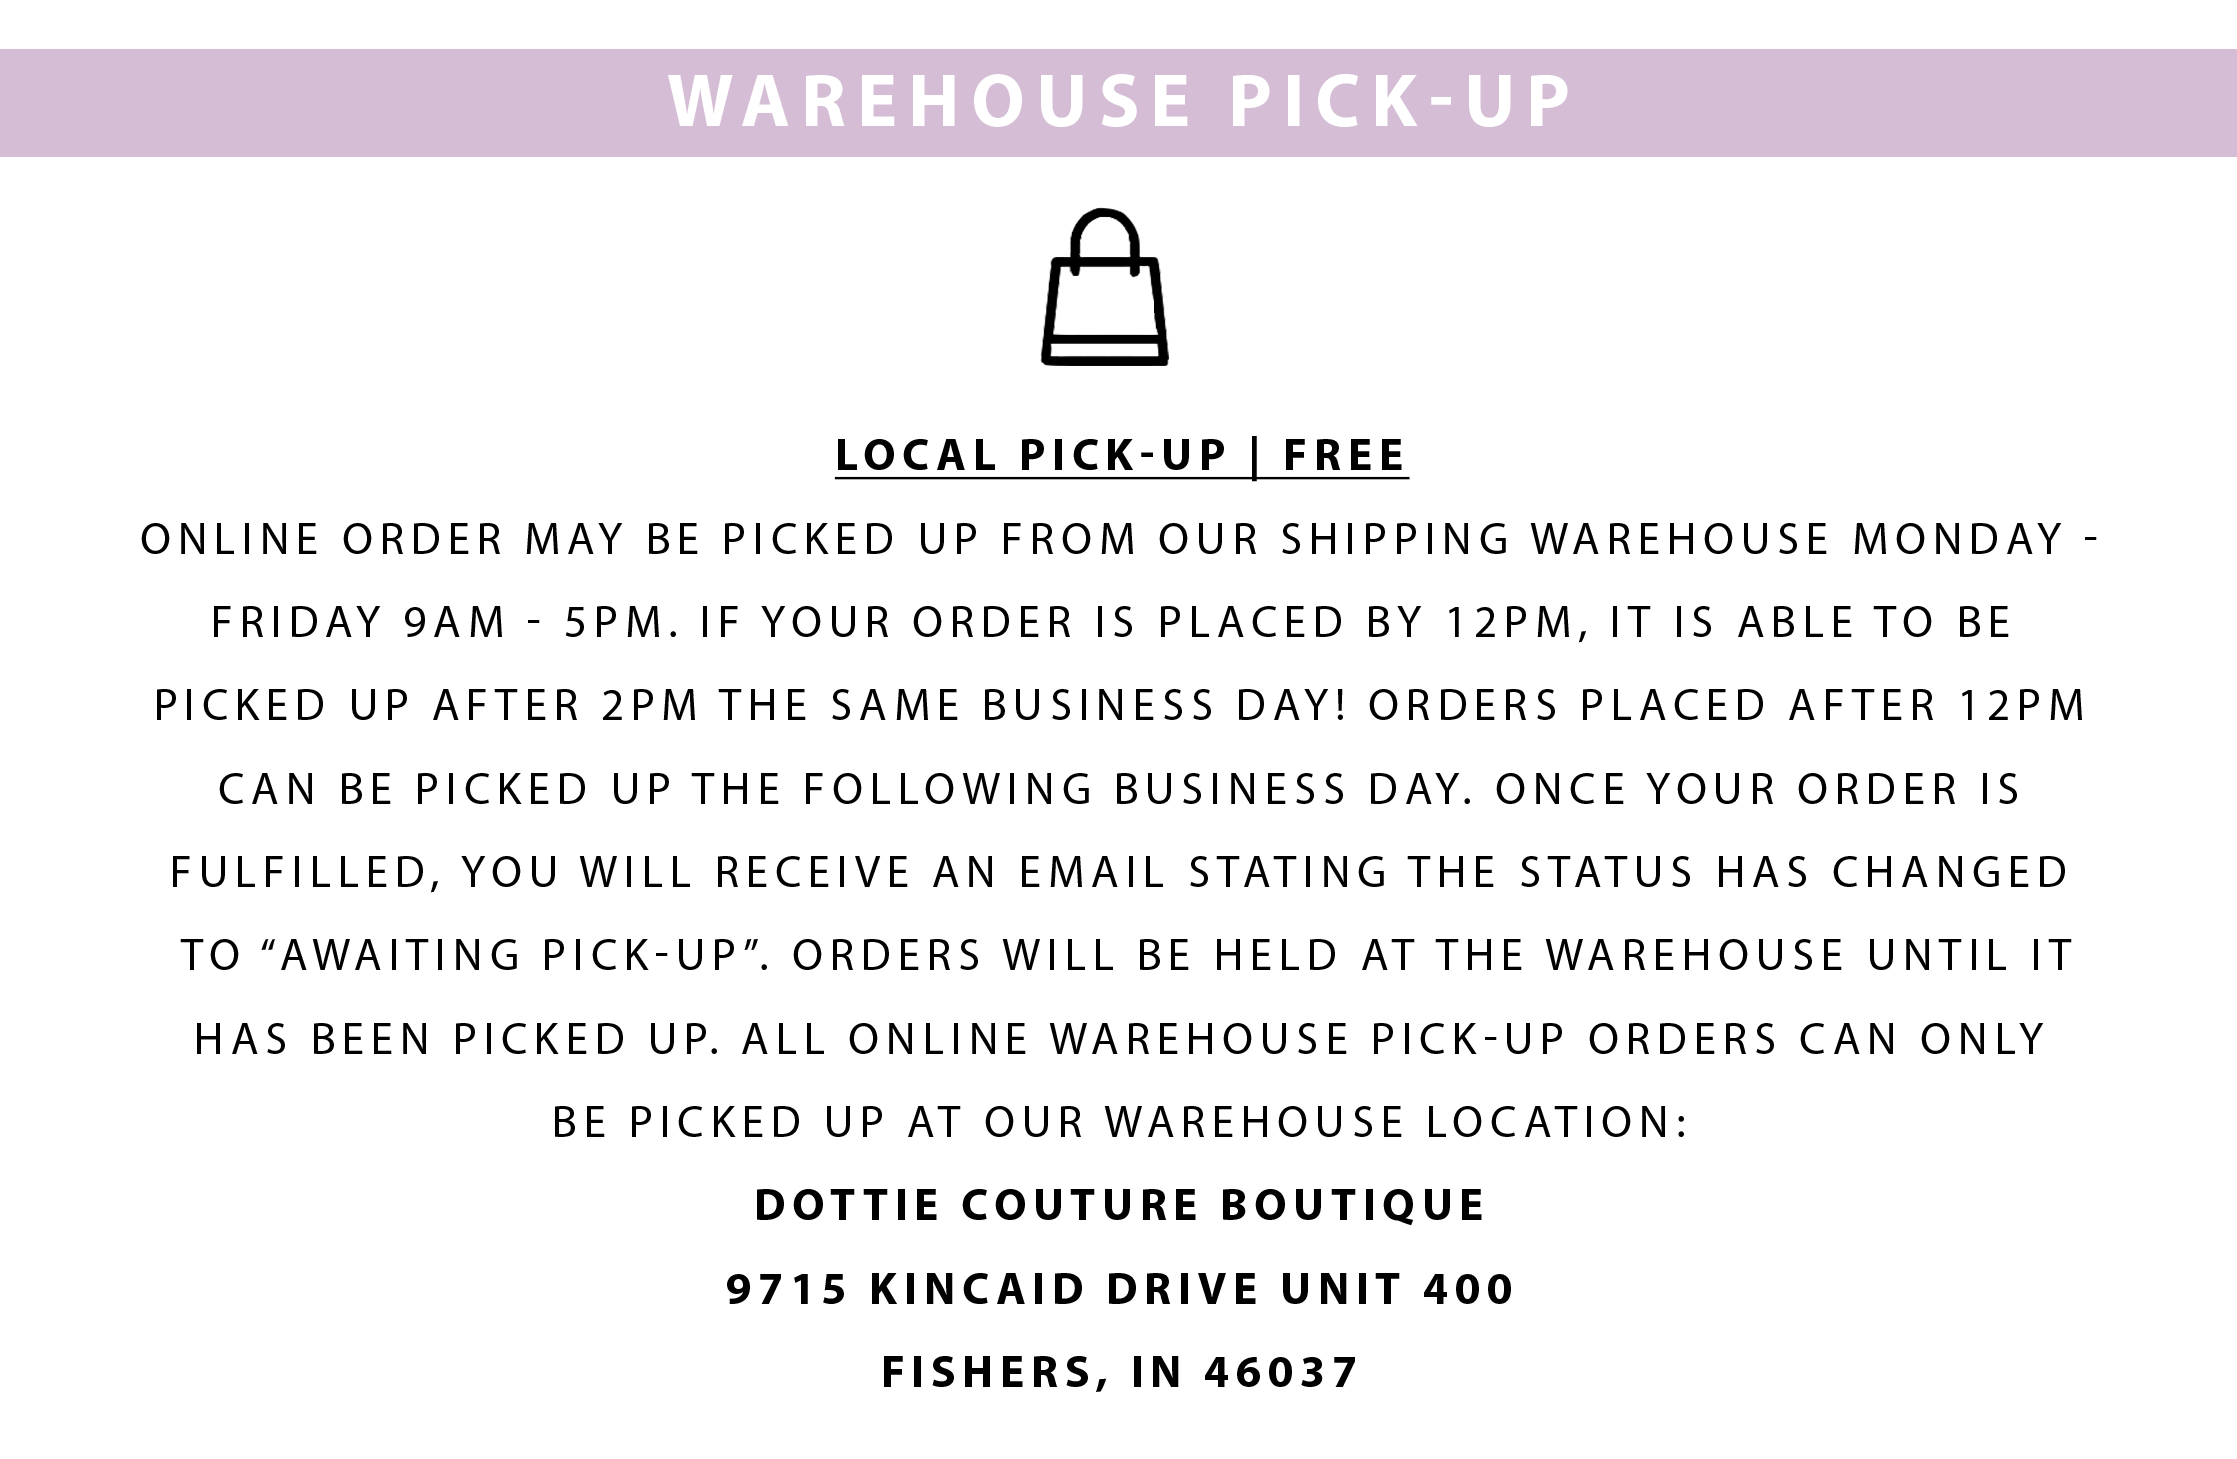 warehouse-pick-up2.png